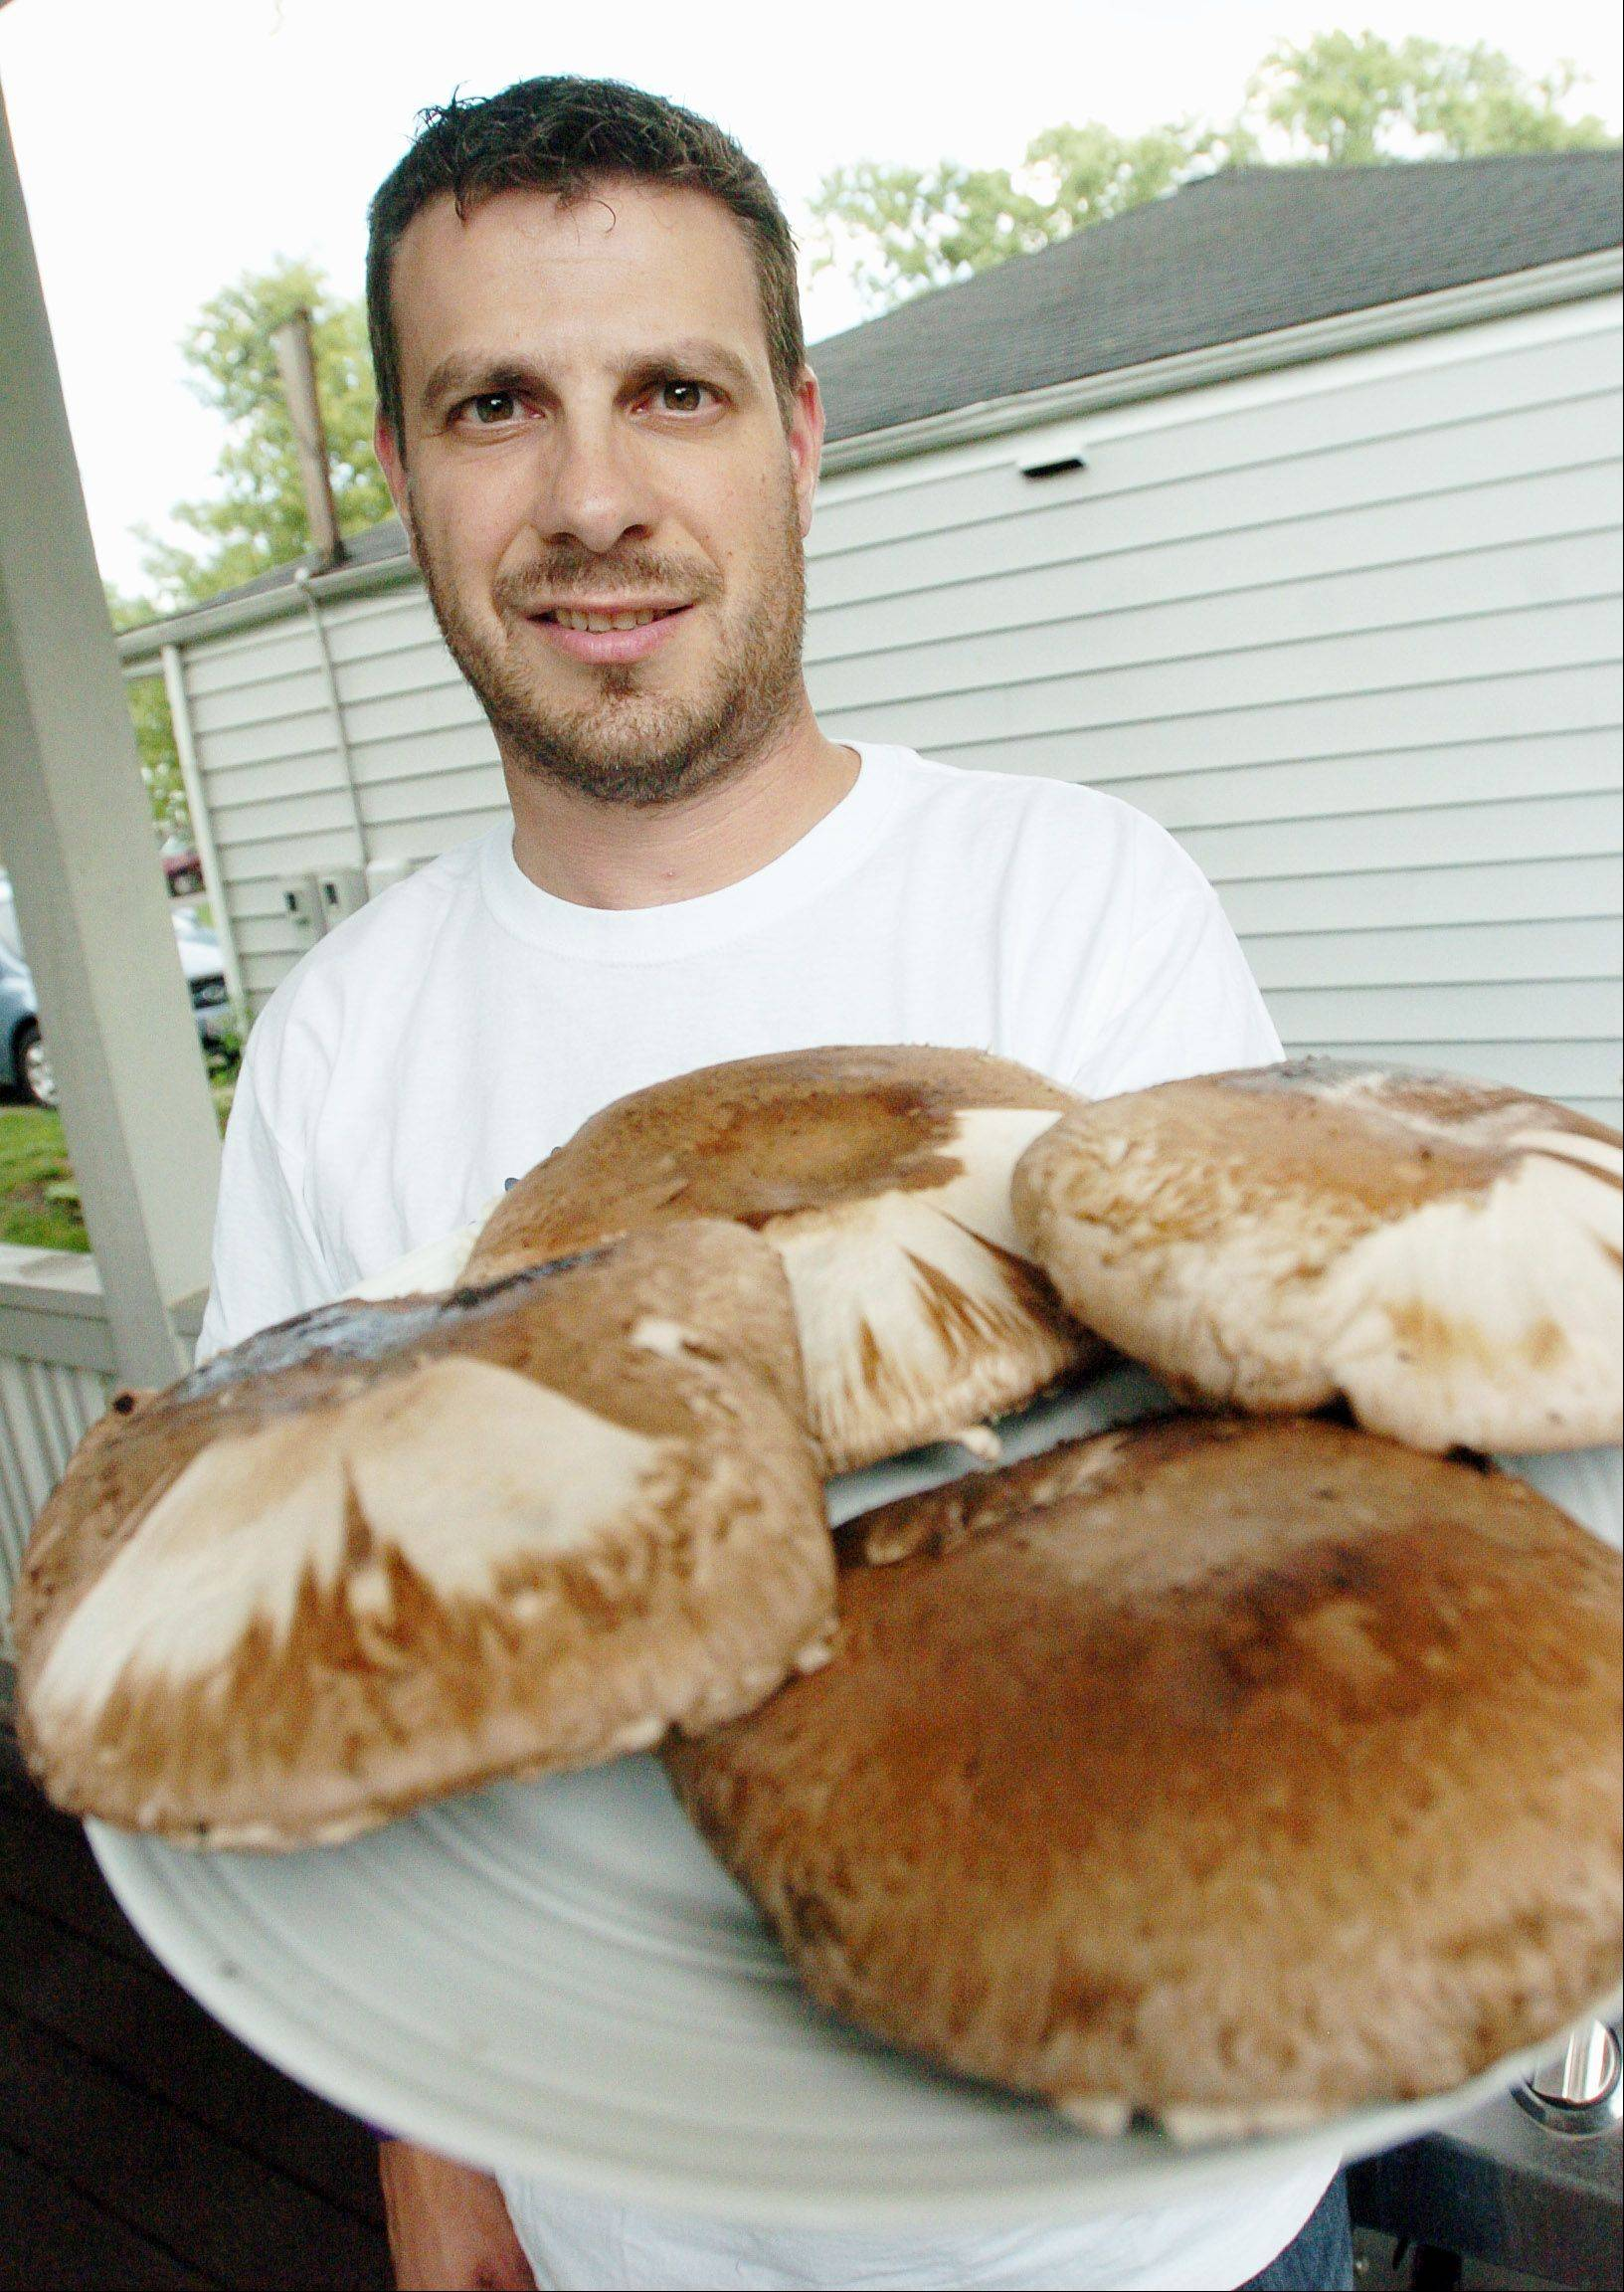 Paul Michna/pmichna@dailyherald.comBill Babiarz of Wheaton with Portobello Mushrooms. He is a Challenge Contestant.